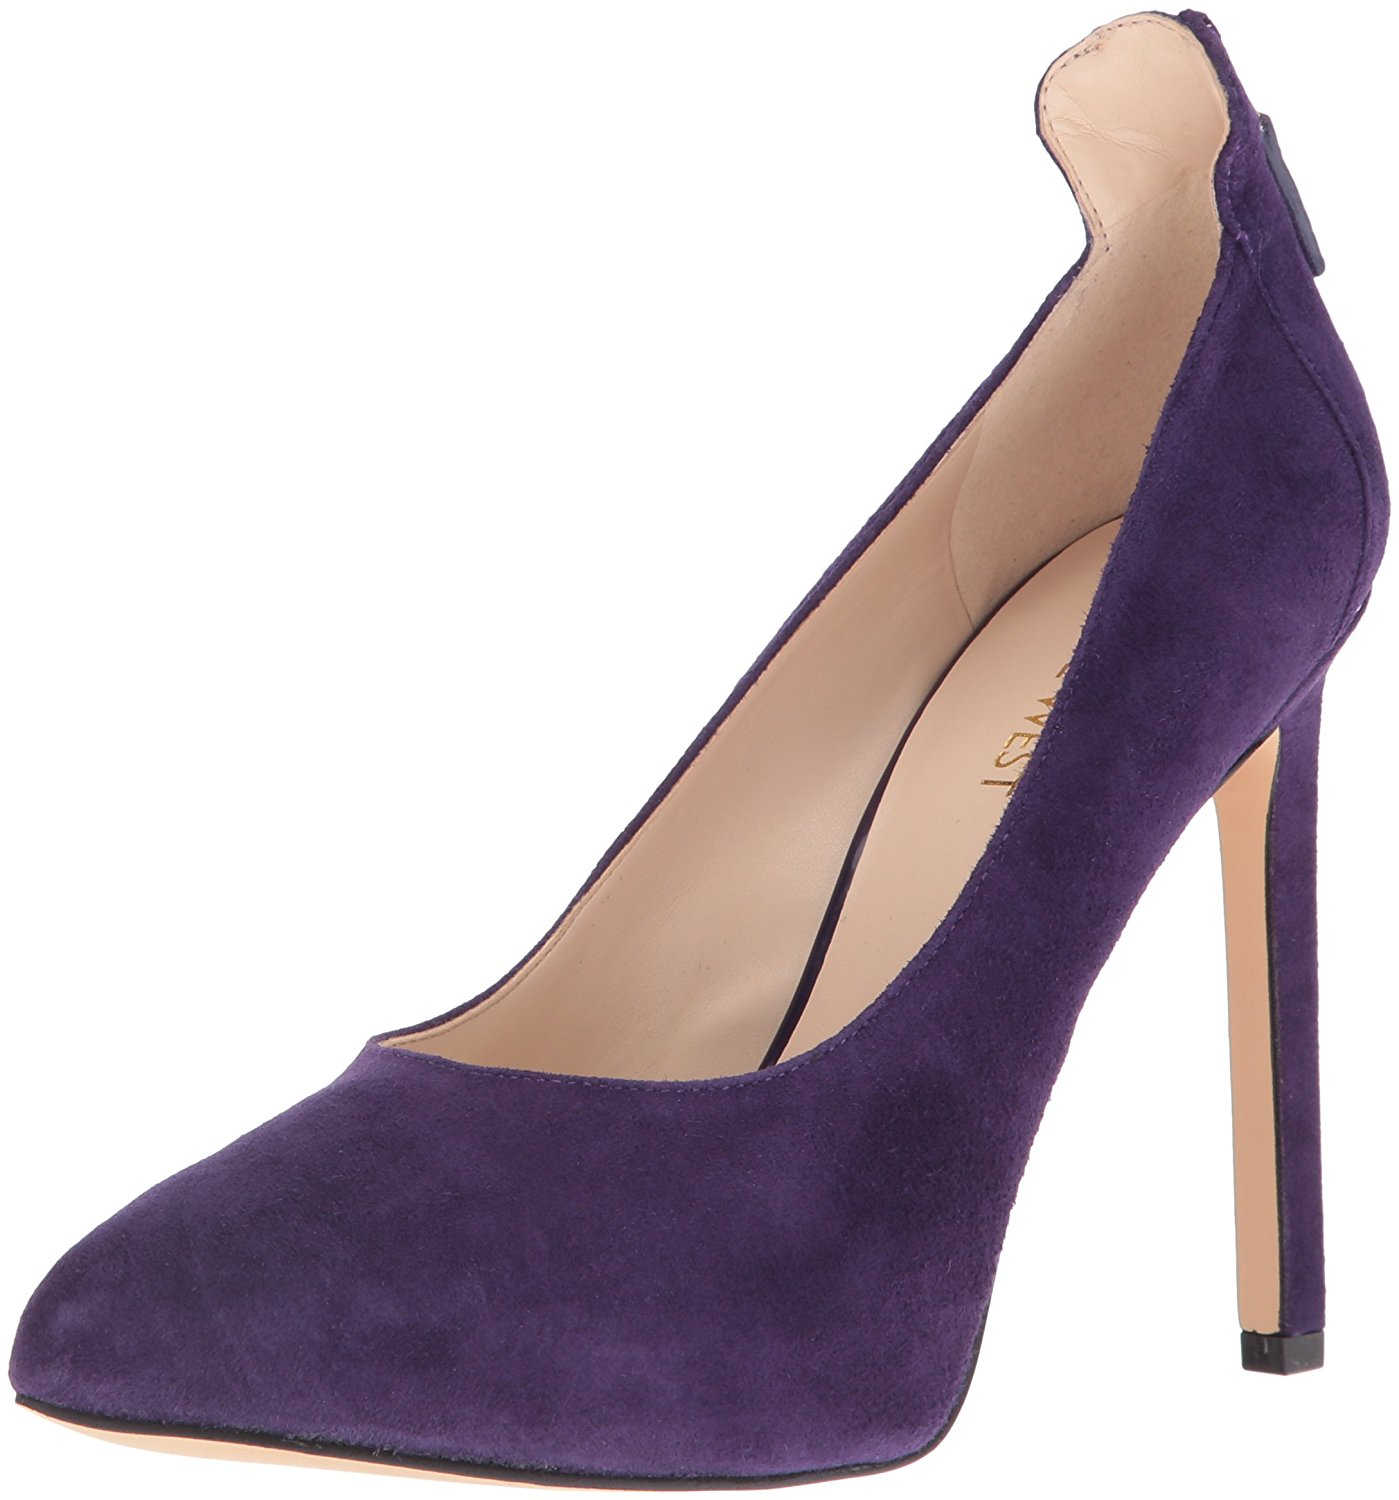 Nine West Women's Lovelost Suede Dress Pump Dark Purple Size 6.0